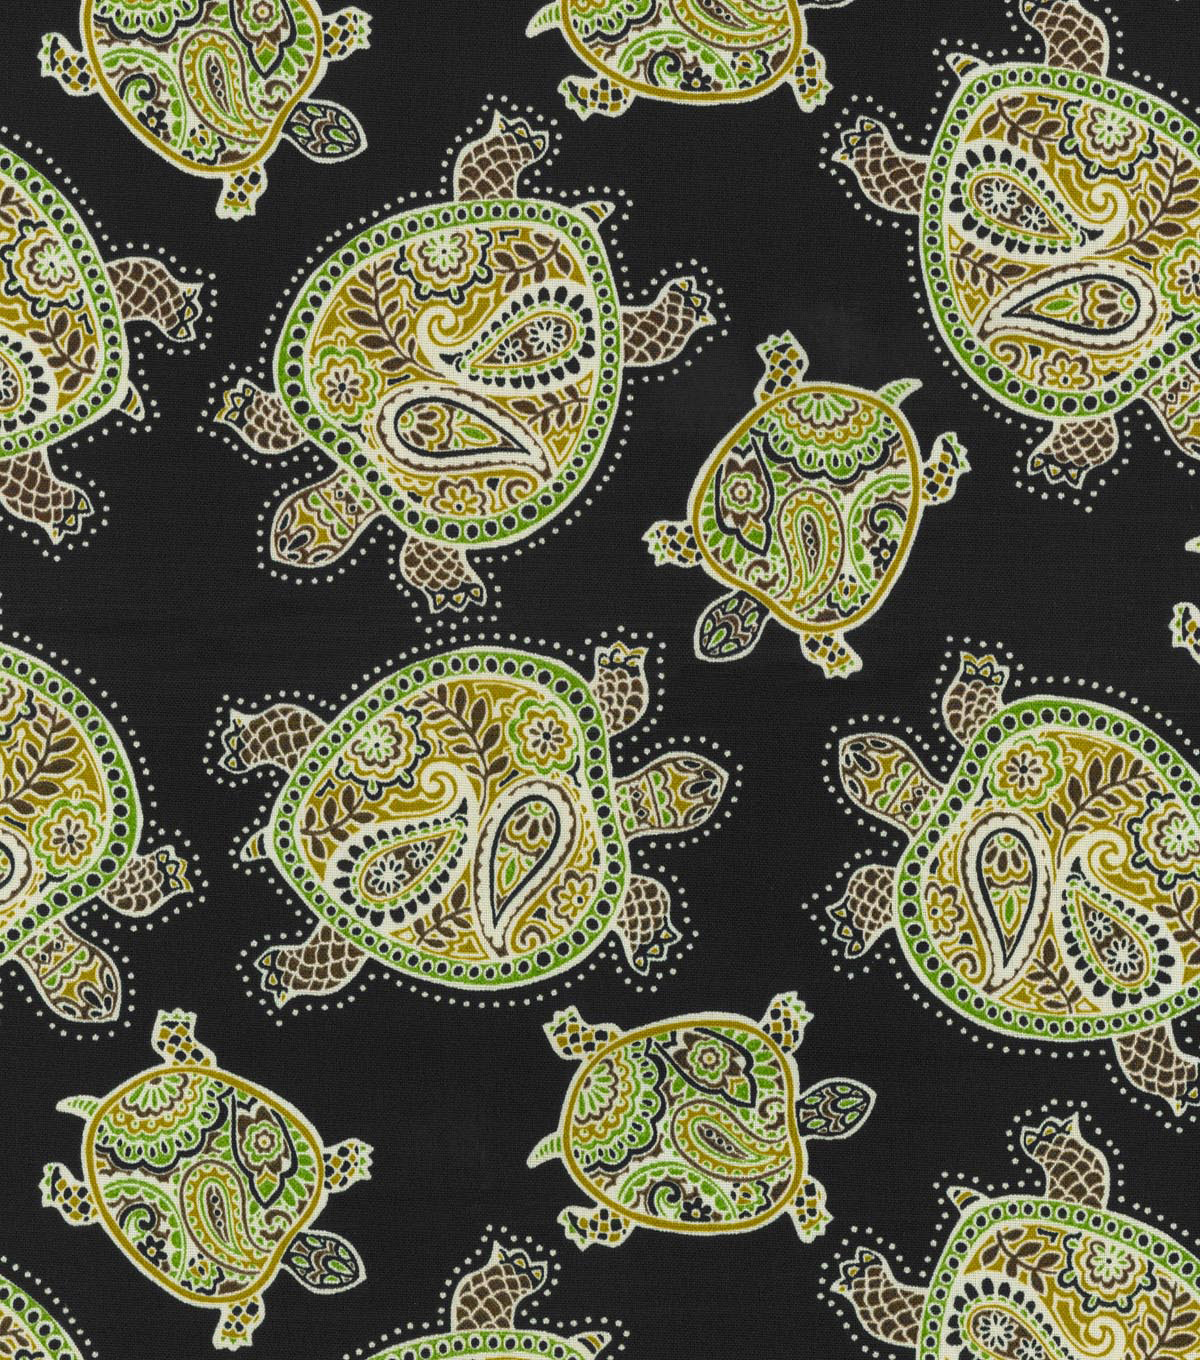 Ms Tbo Tranquil Turtles Black Sand Swatch